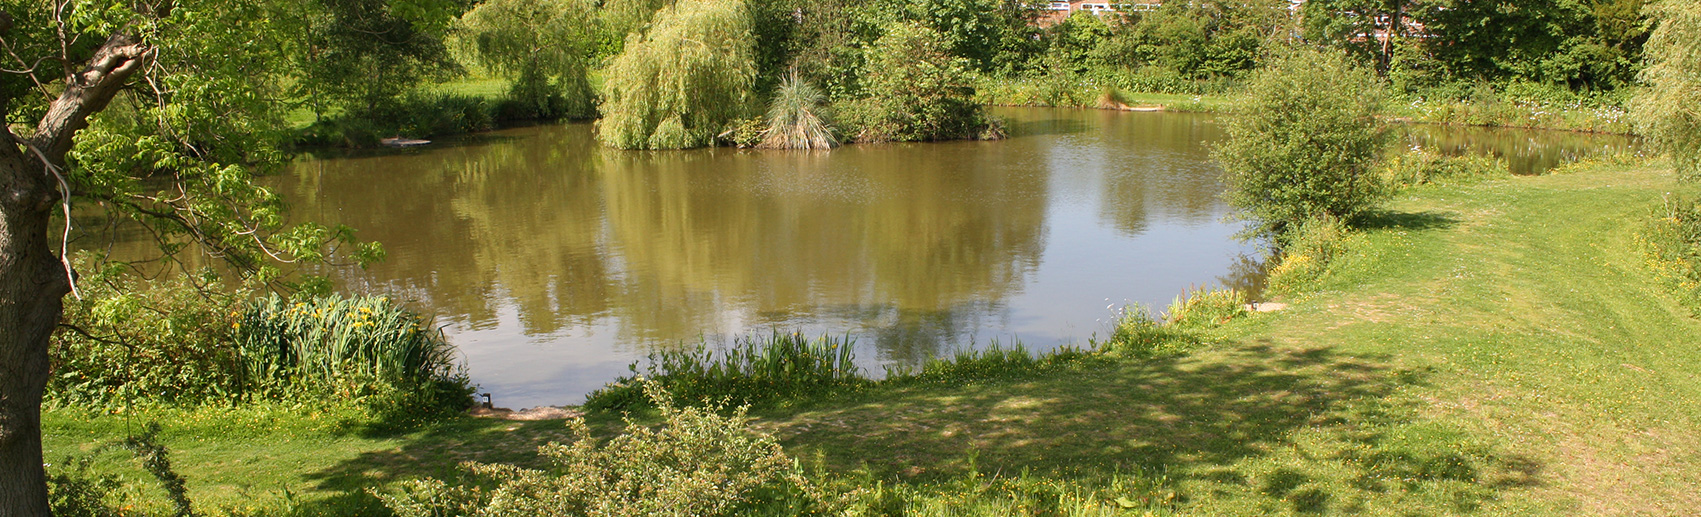 paddock fishing lake - newdigate farms estate